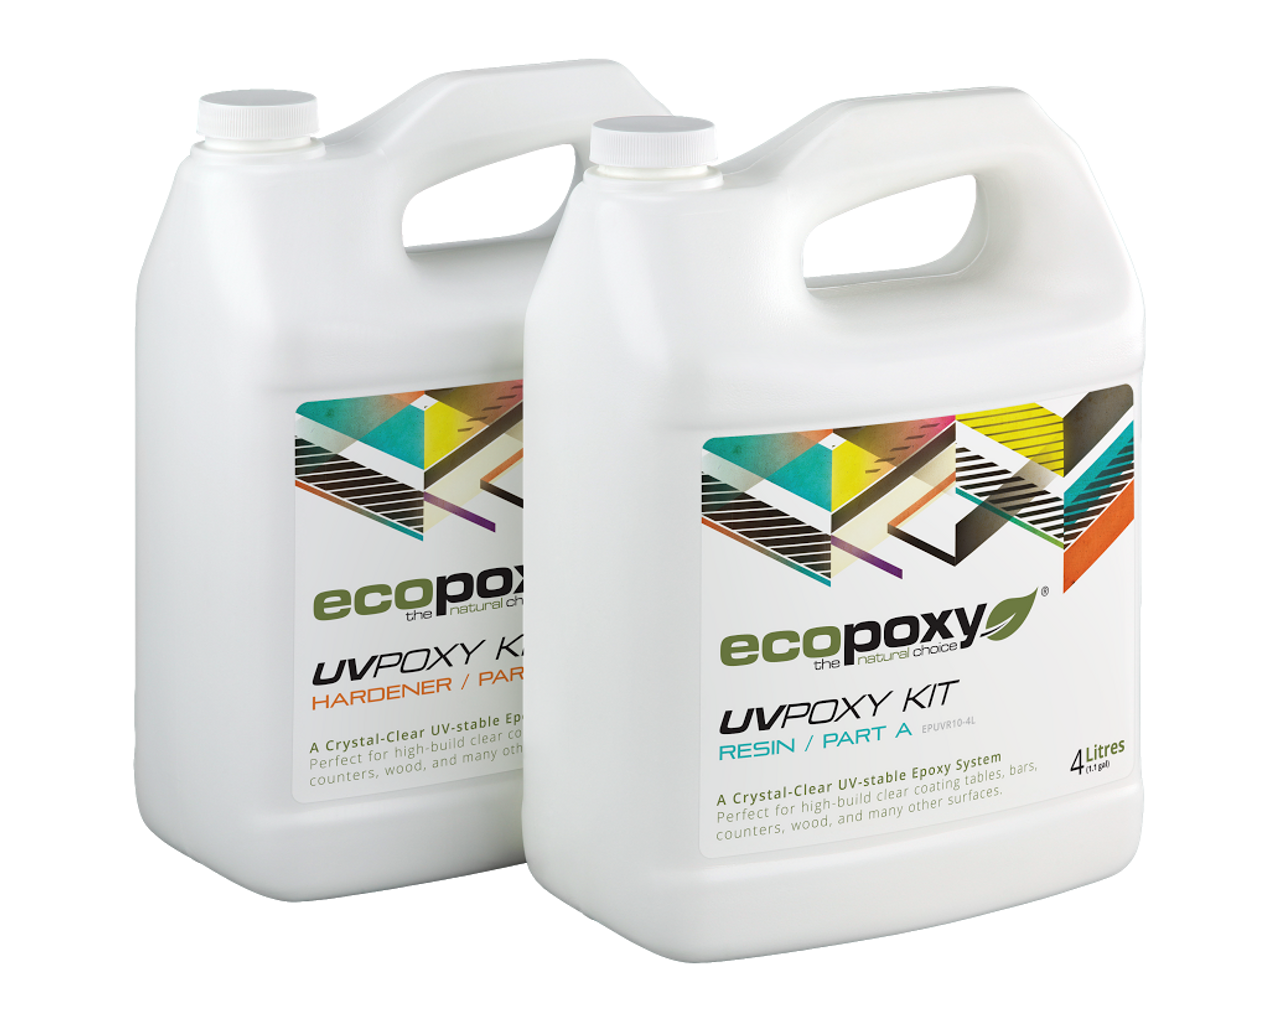 """UVPoxy is a high performance epoxy also used for bar tops and table tops which produces a high build crystal clear durable finish that resists yellowing, fading or cracking over time. UVPoxy can endure extremely high traffic areas such as experienced by night clubs and restaurants. UVPoxy is perfect for embedding mementos such as coins, photos or other memorabilia, it is also commonly used for see through encapsulation, the making of jewelry and much more. UVPoxy will self-level and can easily be built up to a depth of 1/4"""" thick layers.  UVPoxy is specifically formulated to resist yellowing caused by sunlight and other ultra violet light sources and to resist scratching, water, and alcohol to provide a long lasting maintenance free protection for your surface."""